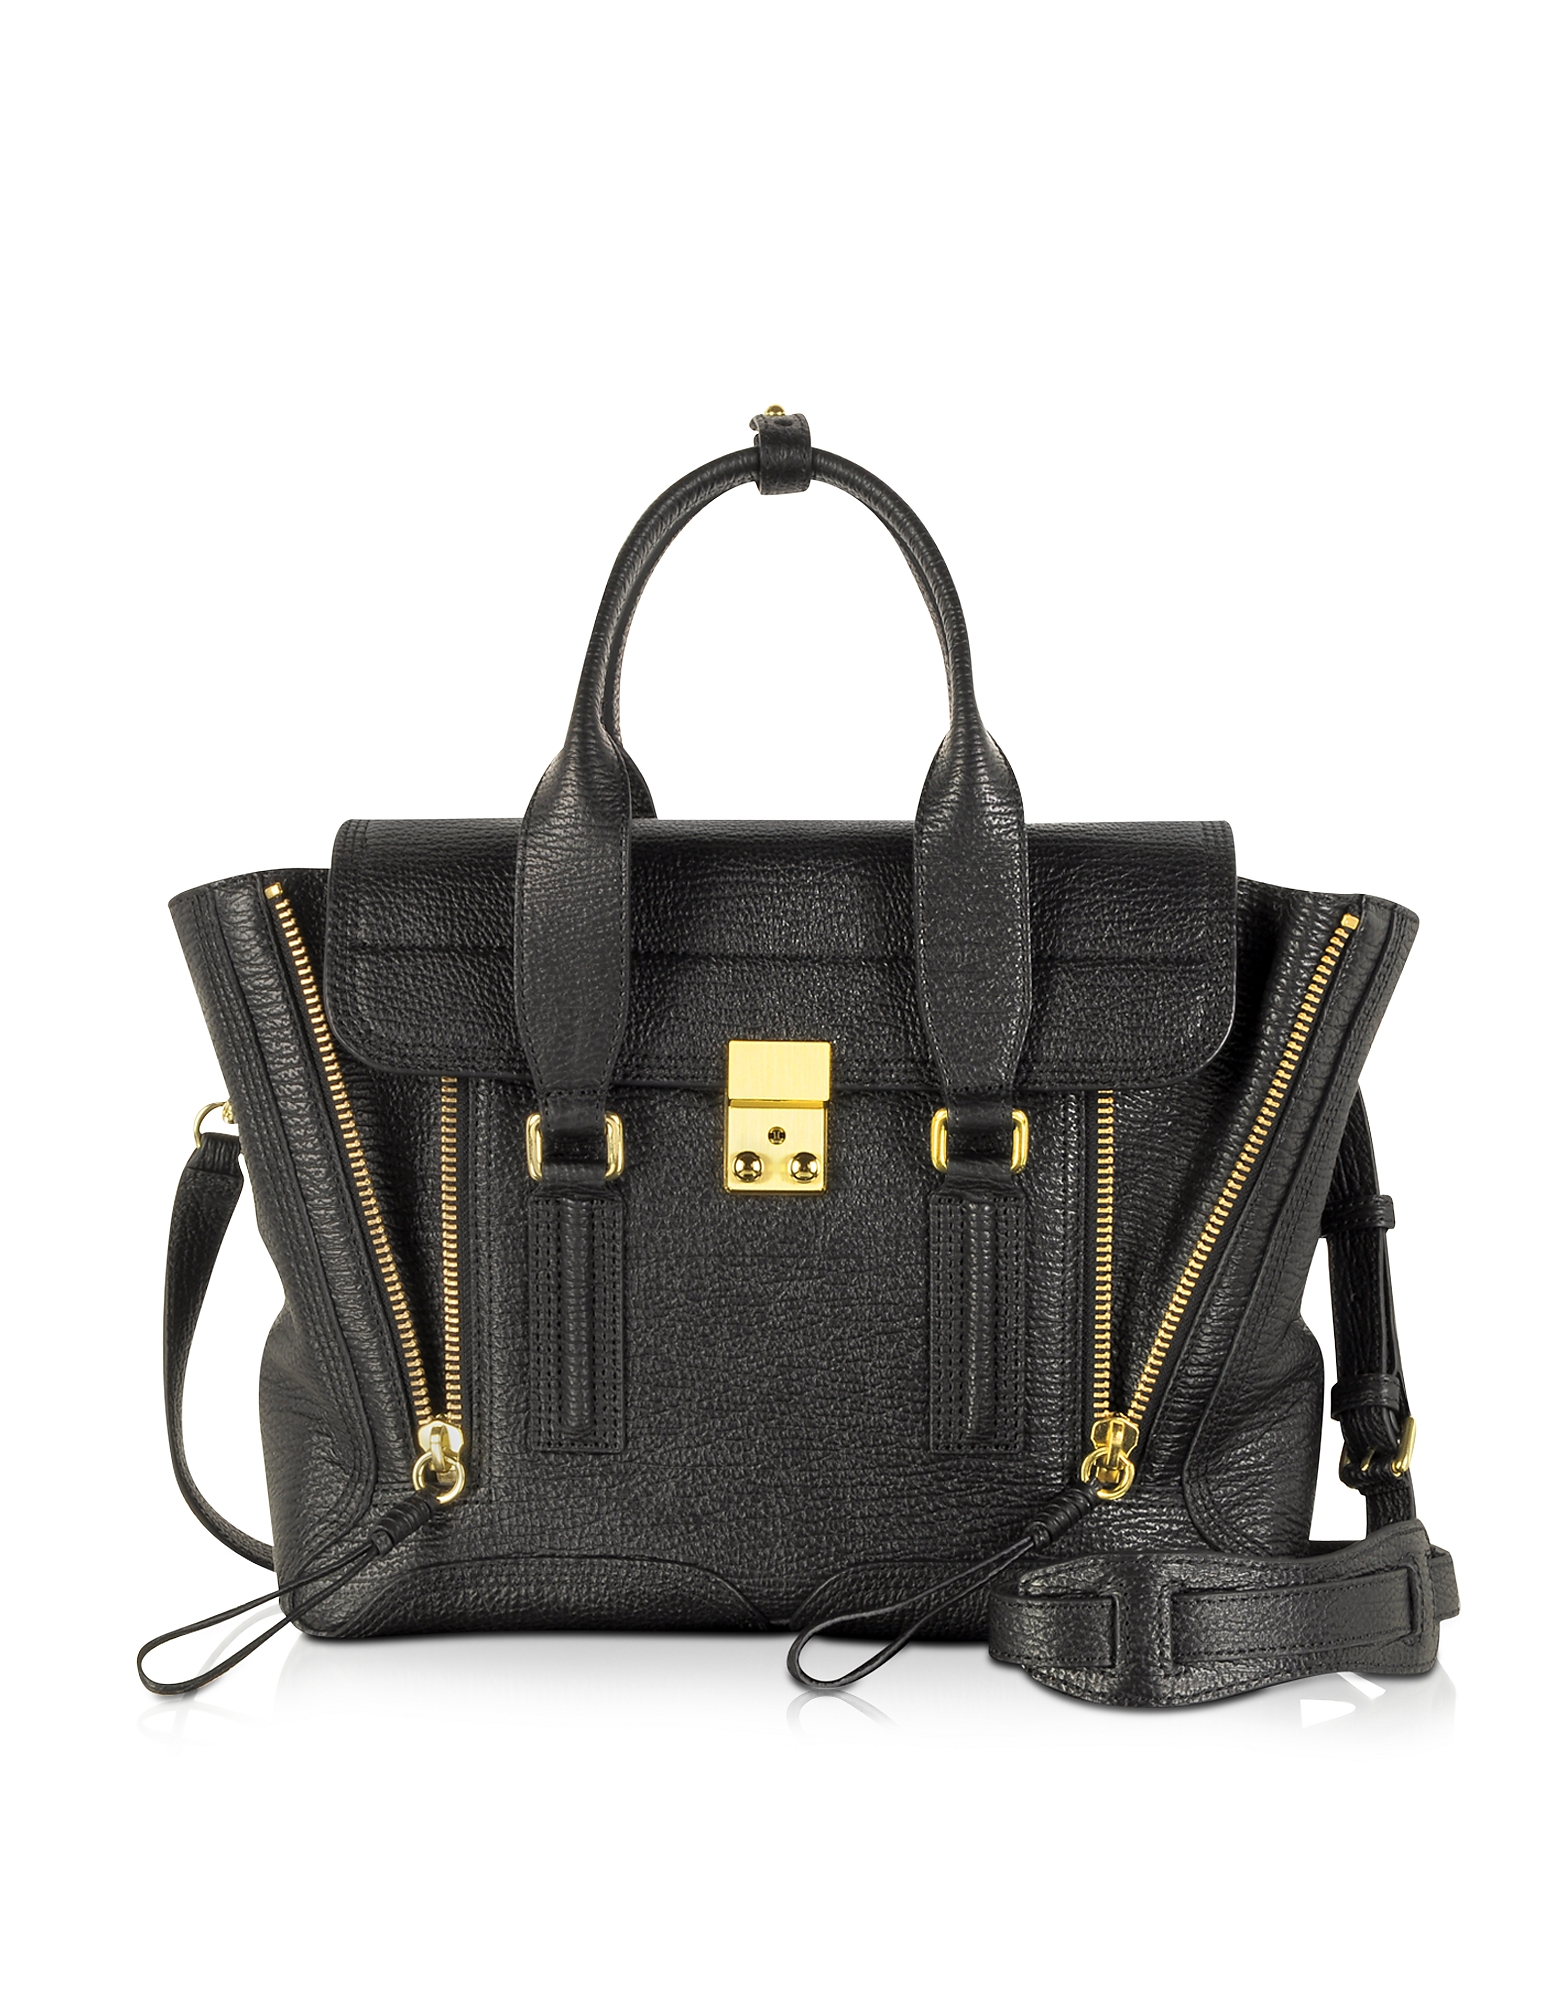 3.1 Phillip Lim Handbags, Pashli Medium Satchel